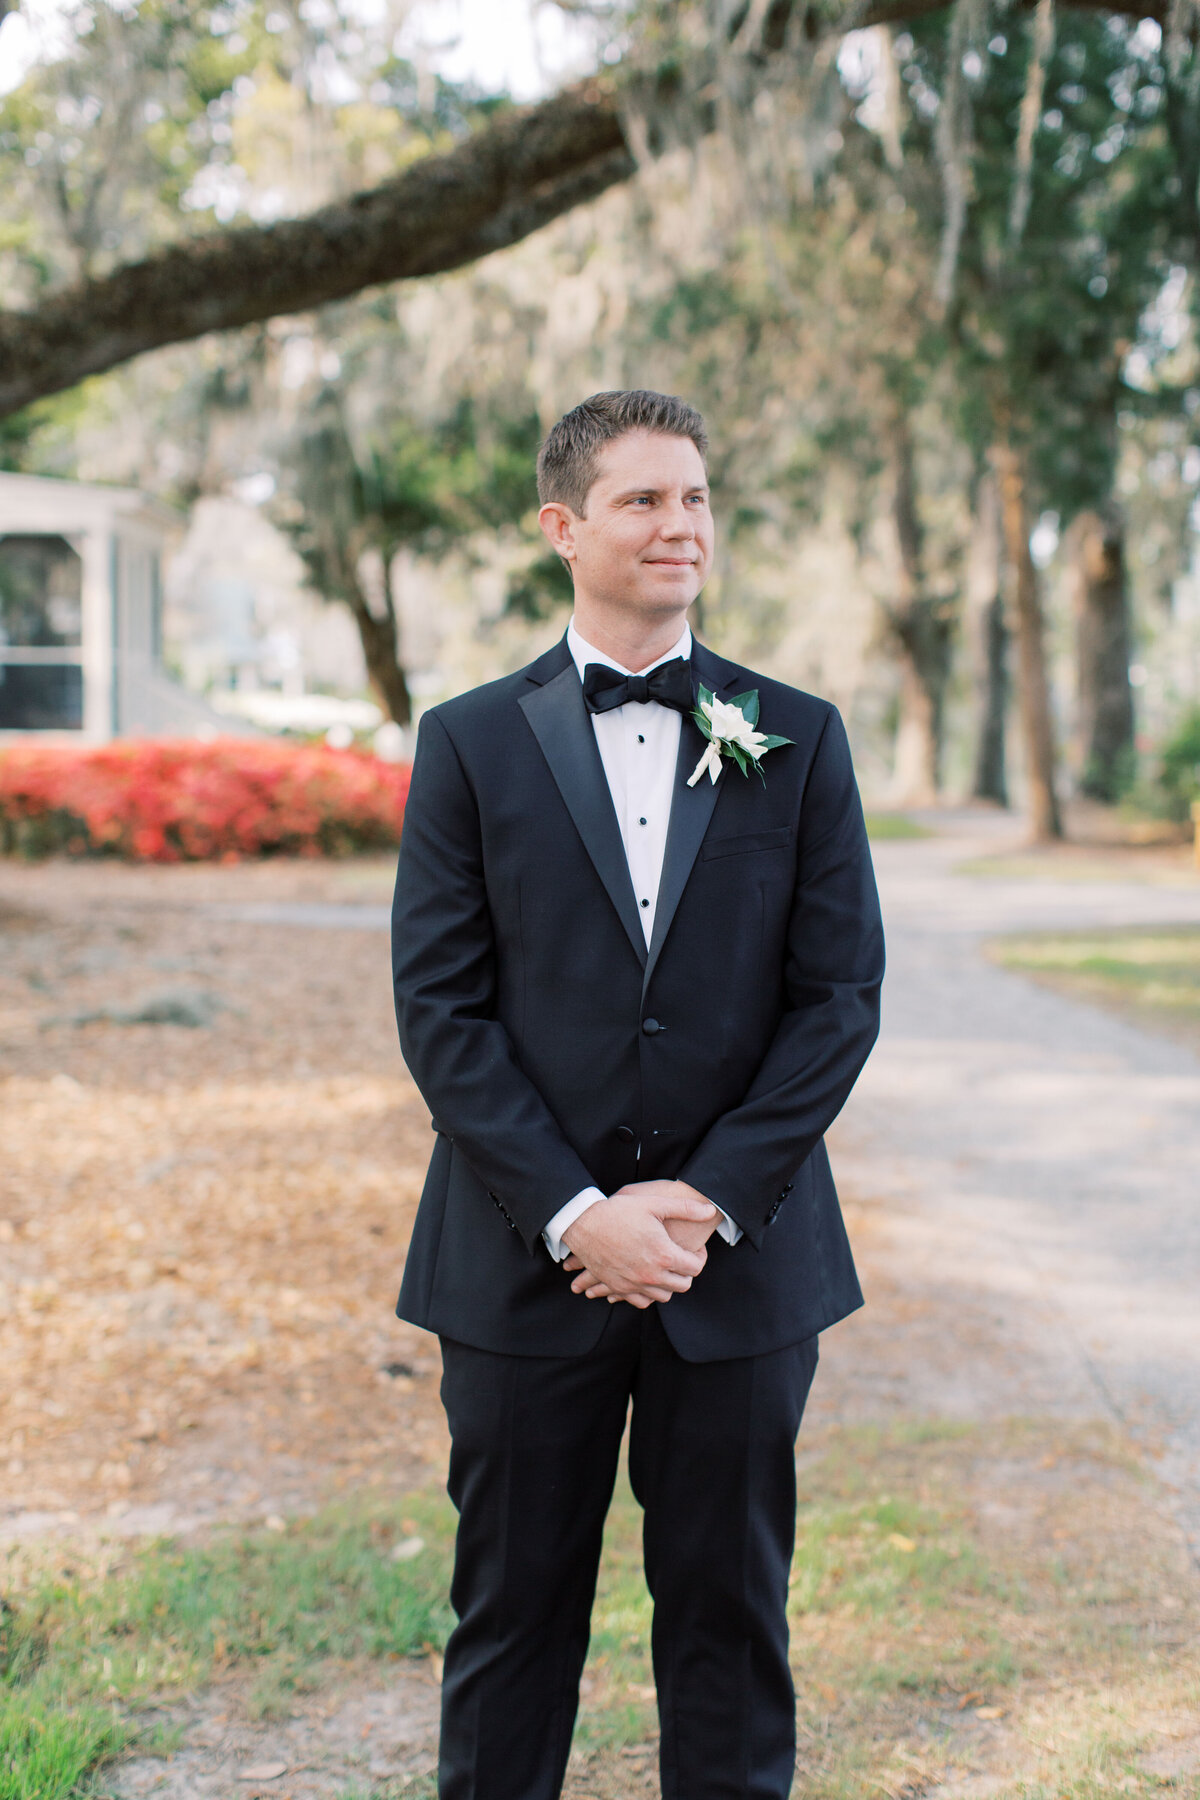 Powell_Oldfield_River_Club_Bluffton_South_Carolina_Beaufort_Savannah_Wedding_Jacksonville_Florida_Devon_Donnahoo_Photography_0333